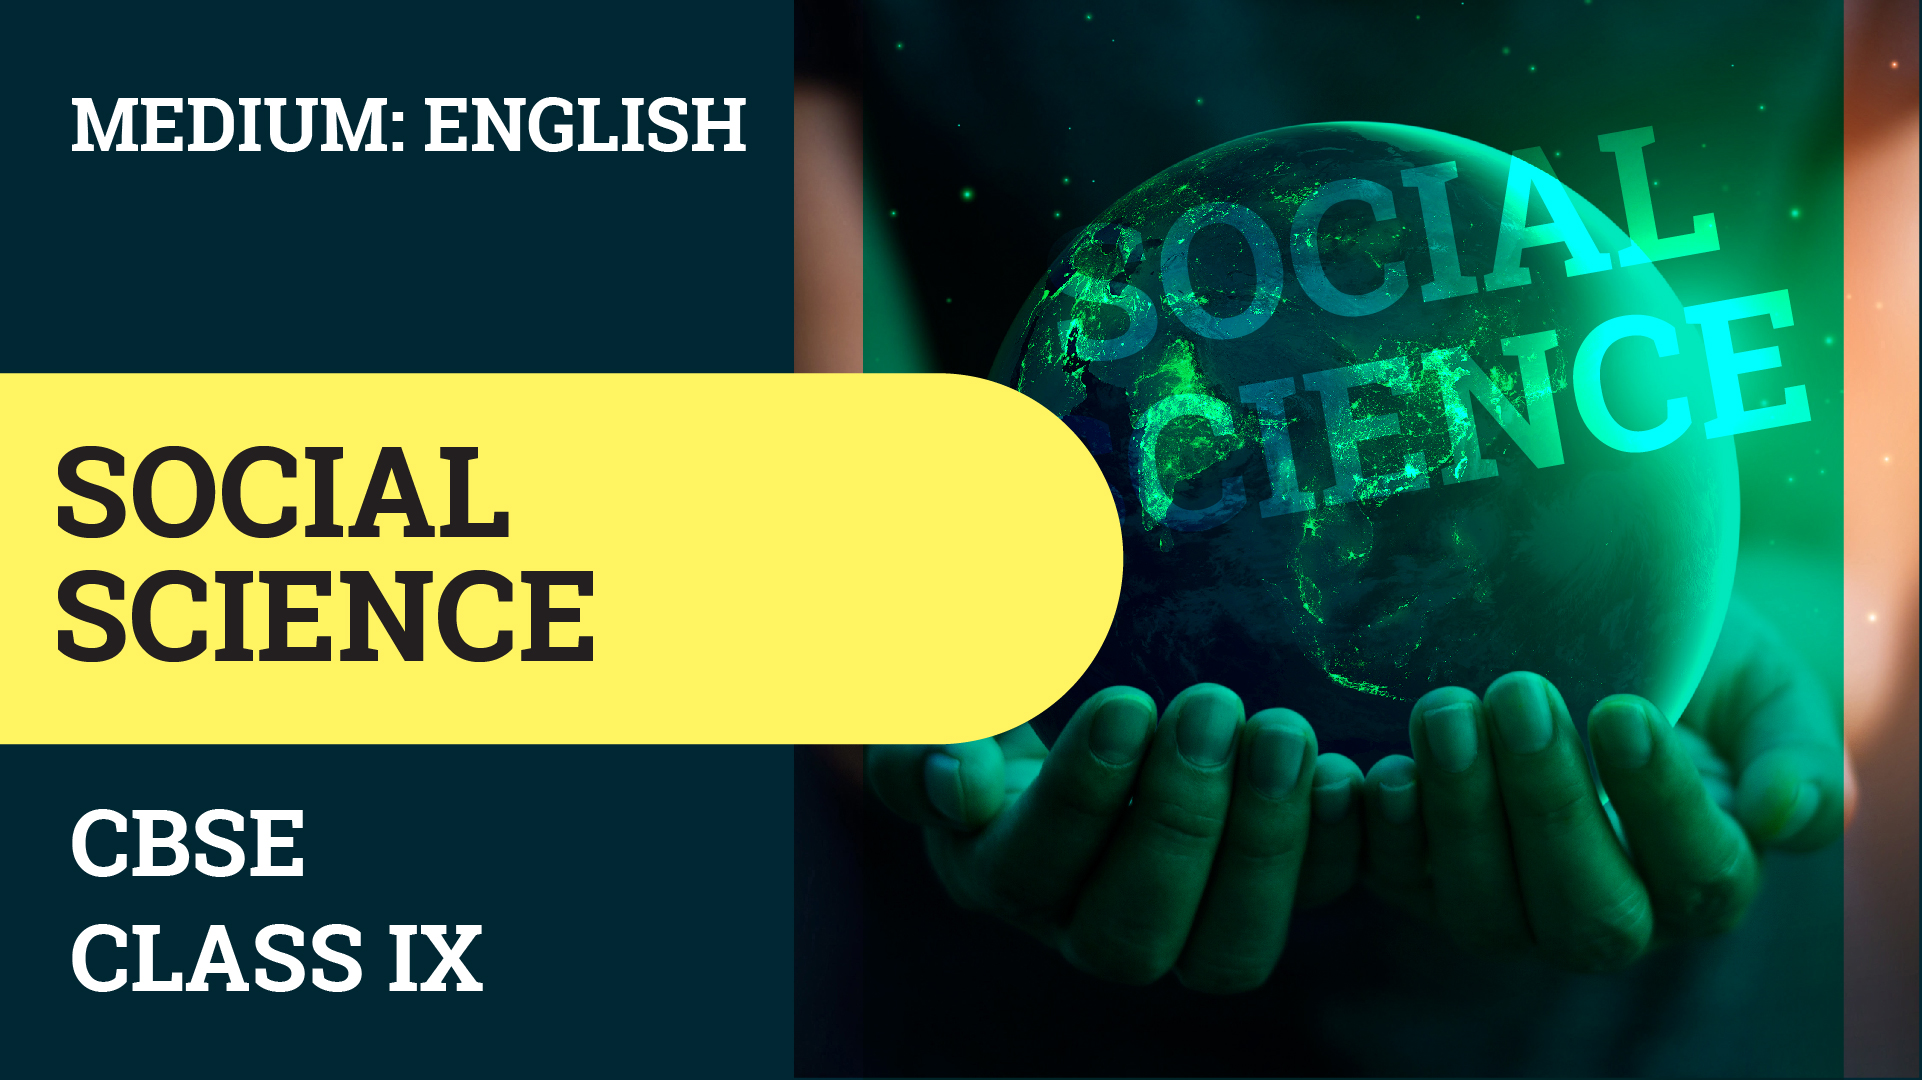 CBSE CLASS 9 SOCIAL SCIENCE (ENGLISH MEDIUM) VIDEO LECTURE